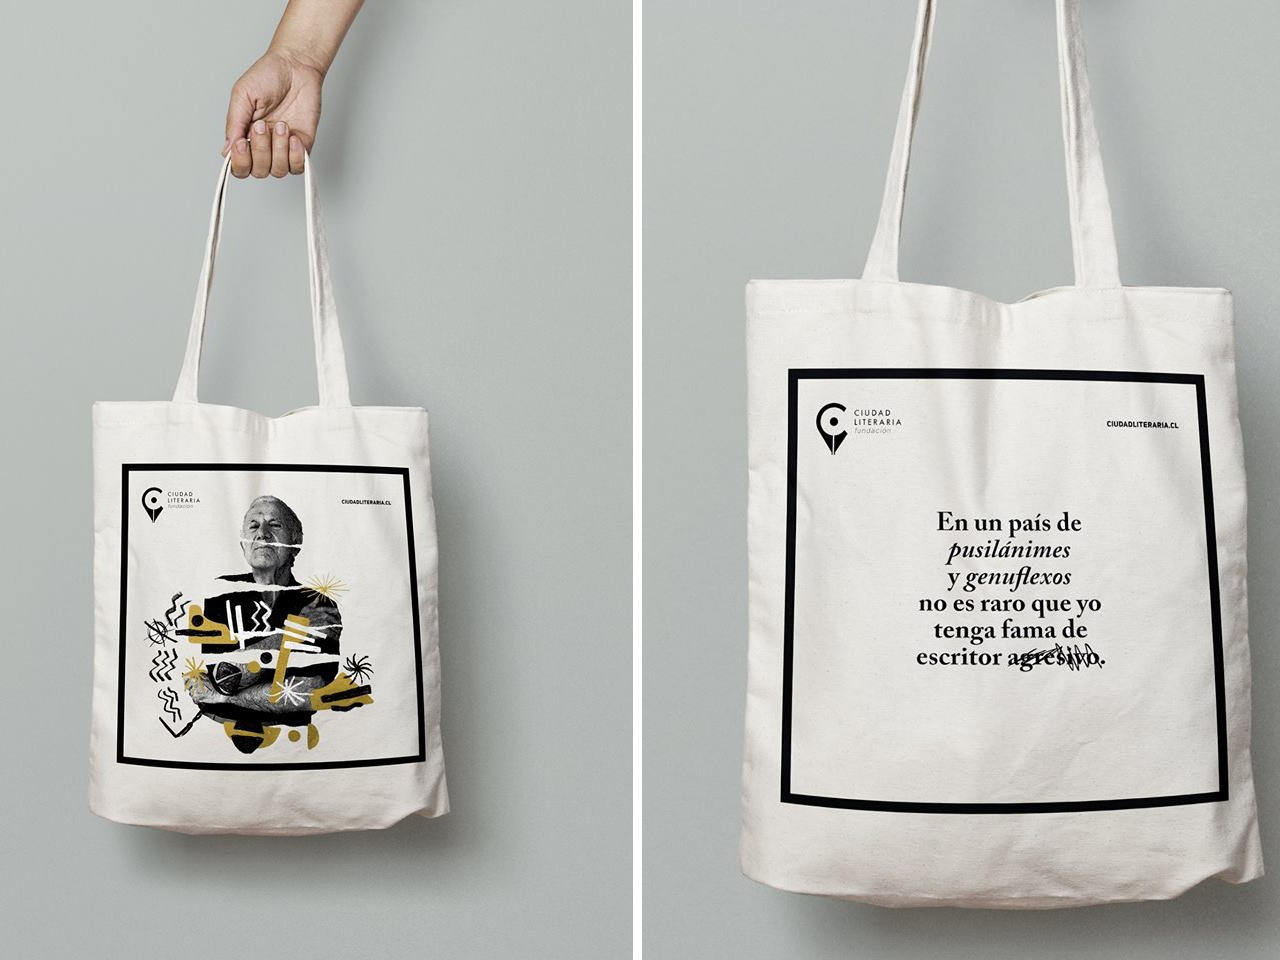 CL_Totebag_Merch portrait collage abstract books art direction branding design literature handdrawing printing textile design tote bag screenprinting handmade merchandise design apparel design